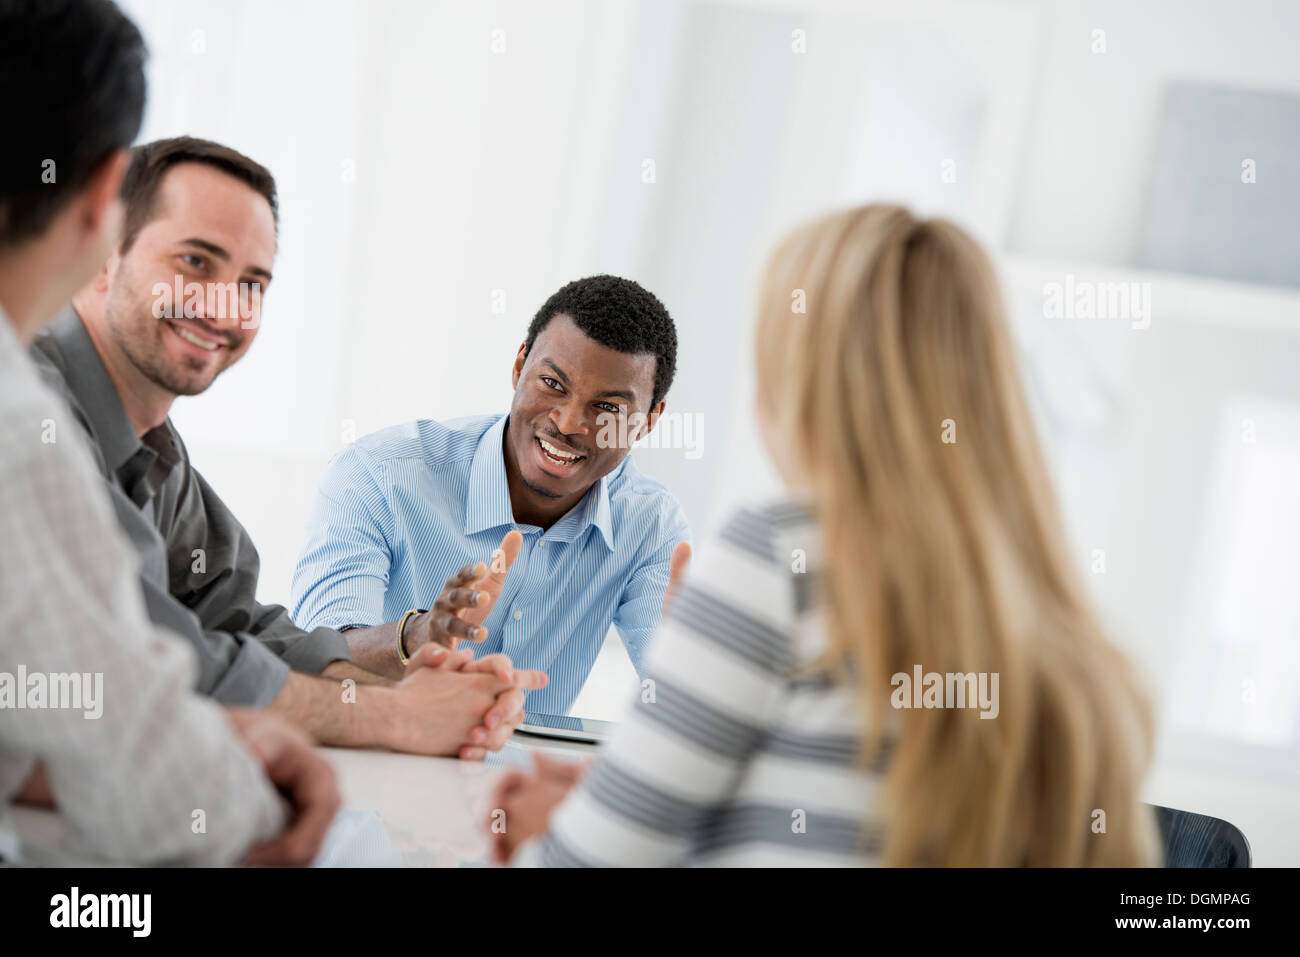 Office interior. A group of four people, One woman and three men. Stock Photo